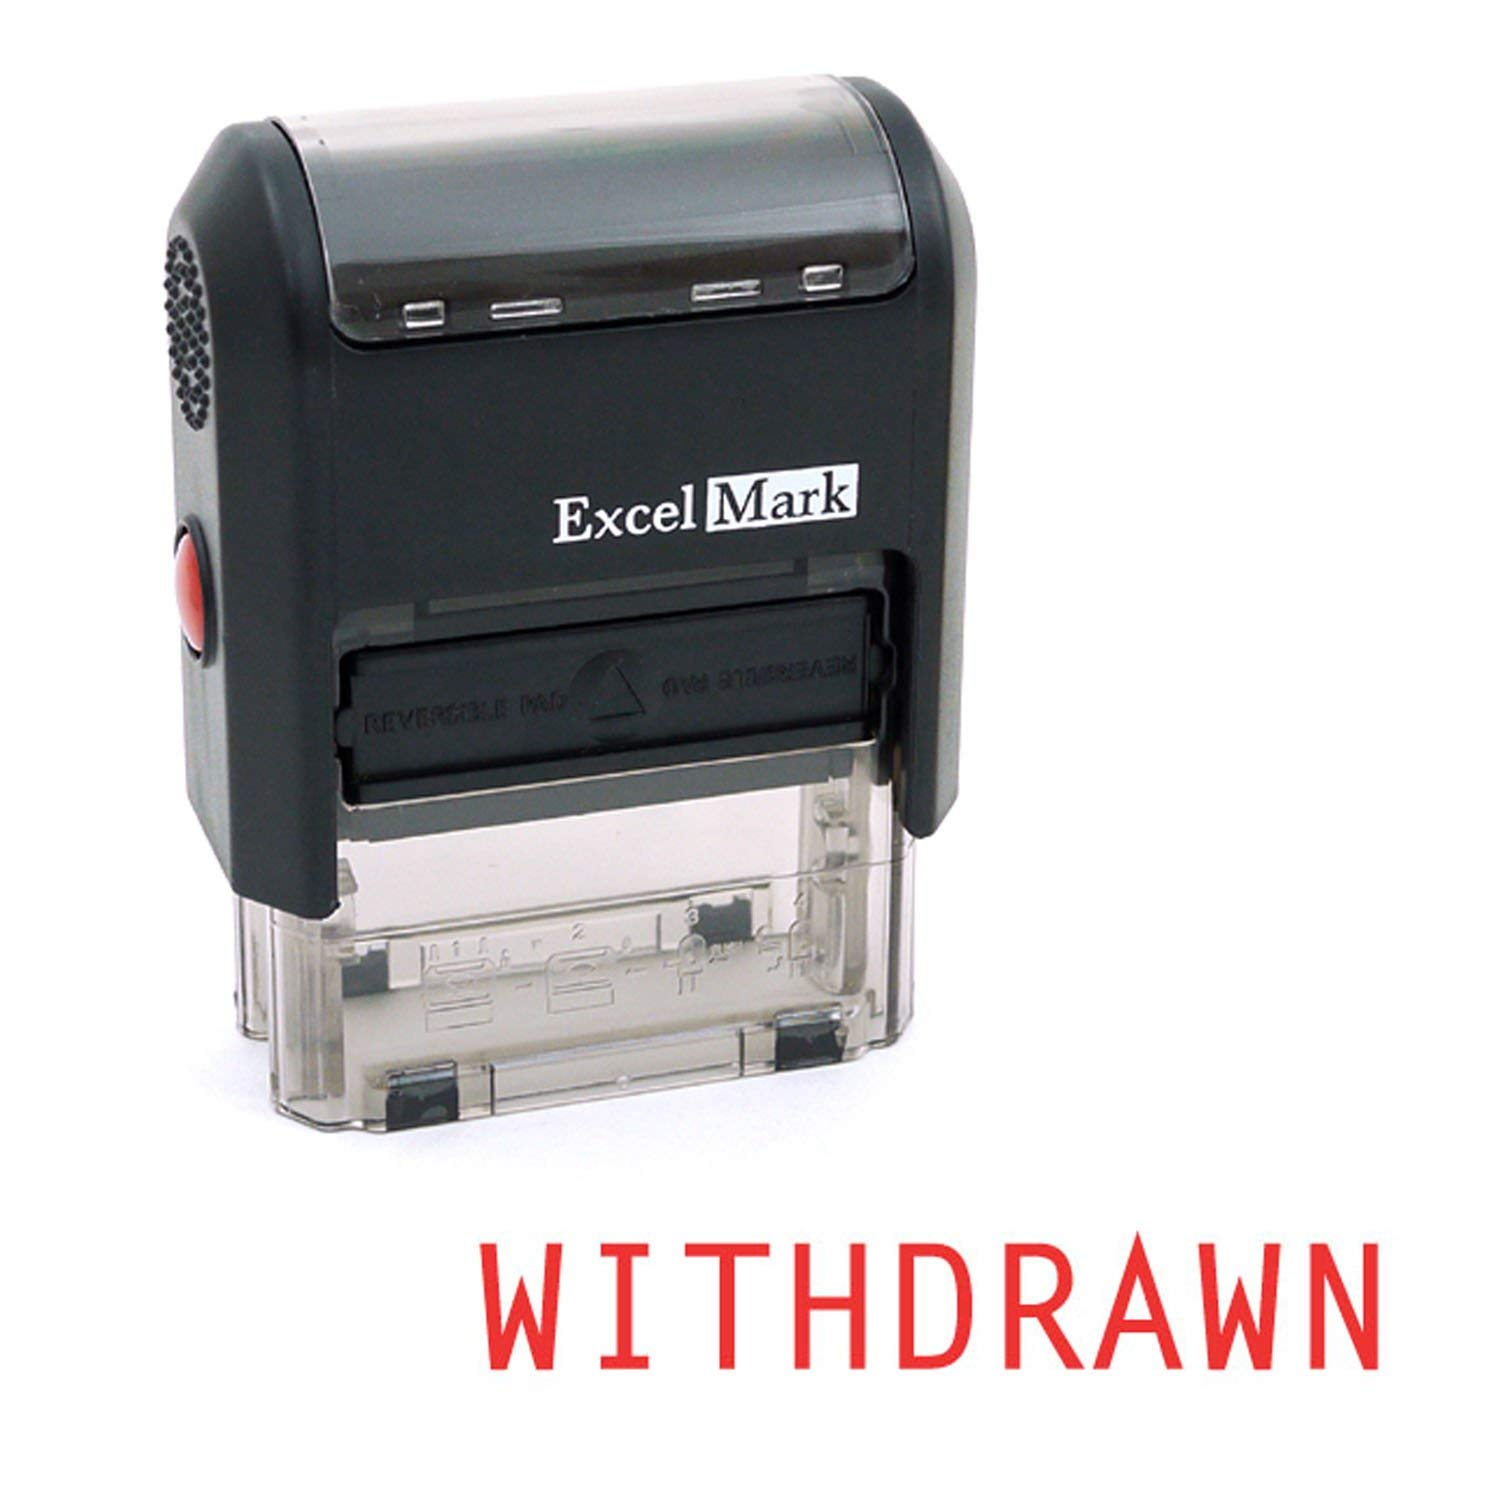 WITHDRAWN Self Inking Rubber Stamp - Red Ink (ExcelMark A1539)